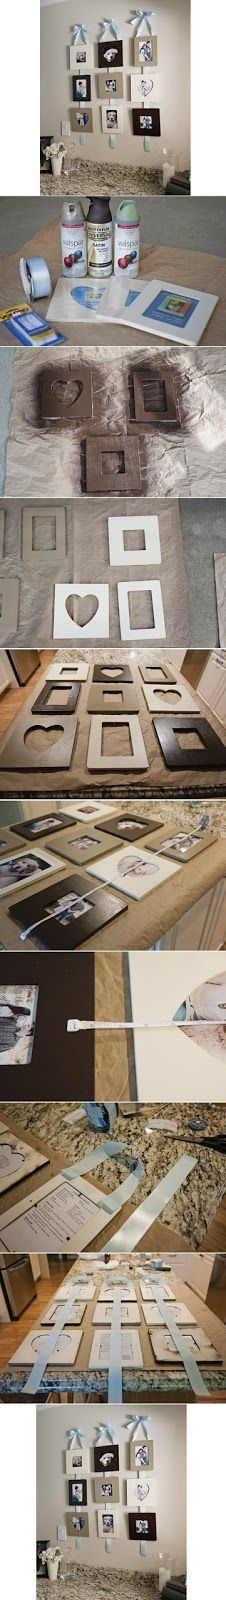 A 1 Nice Blog: Stylish Wall Photo Frame